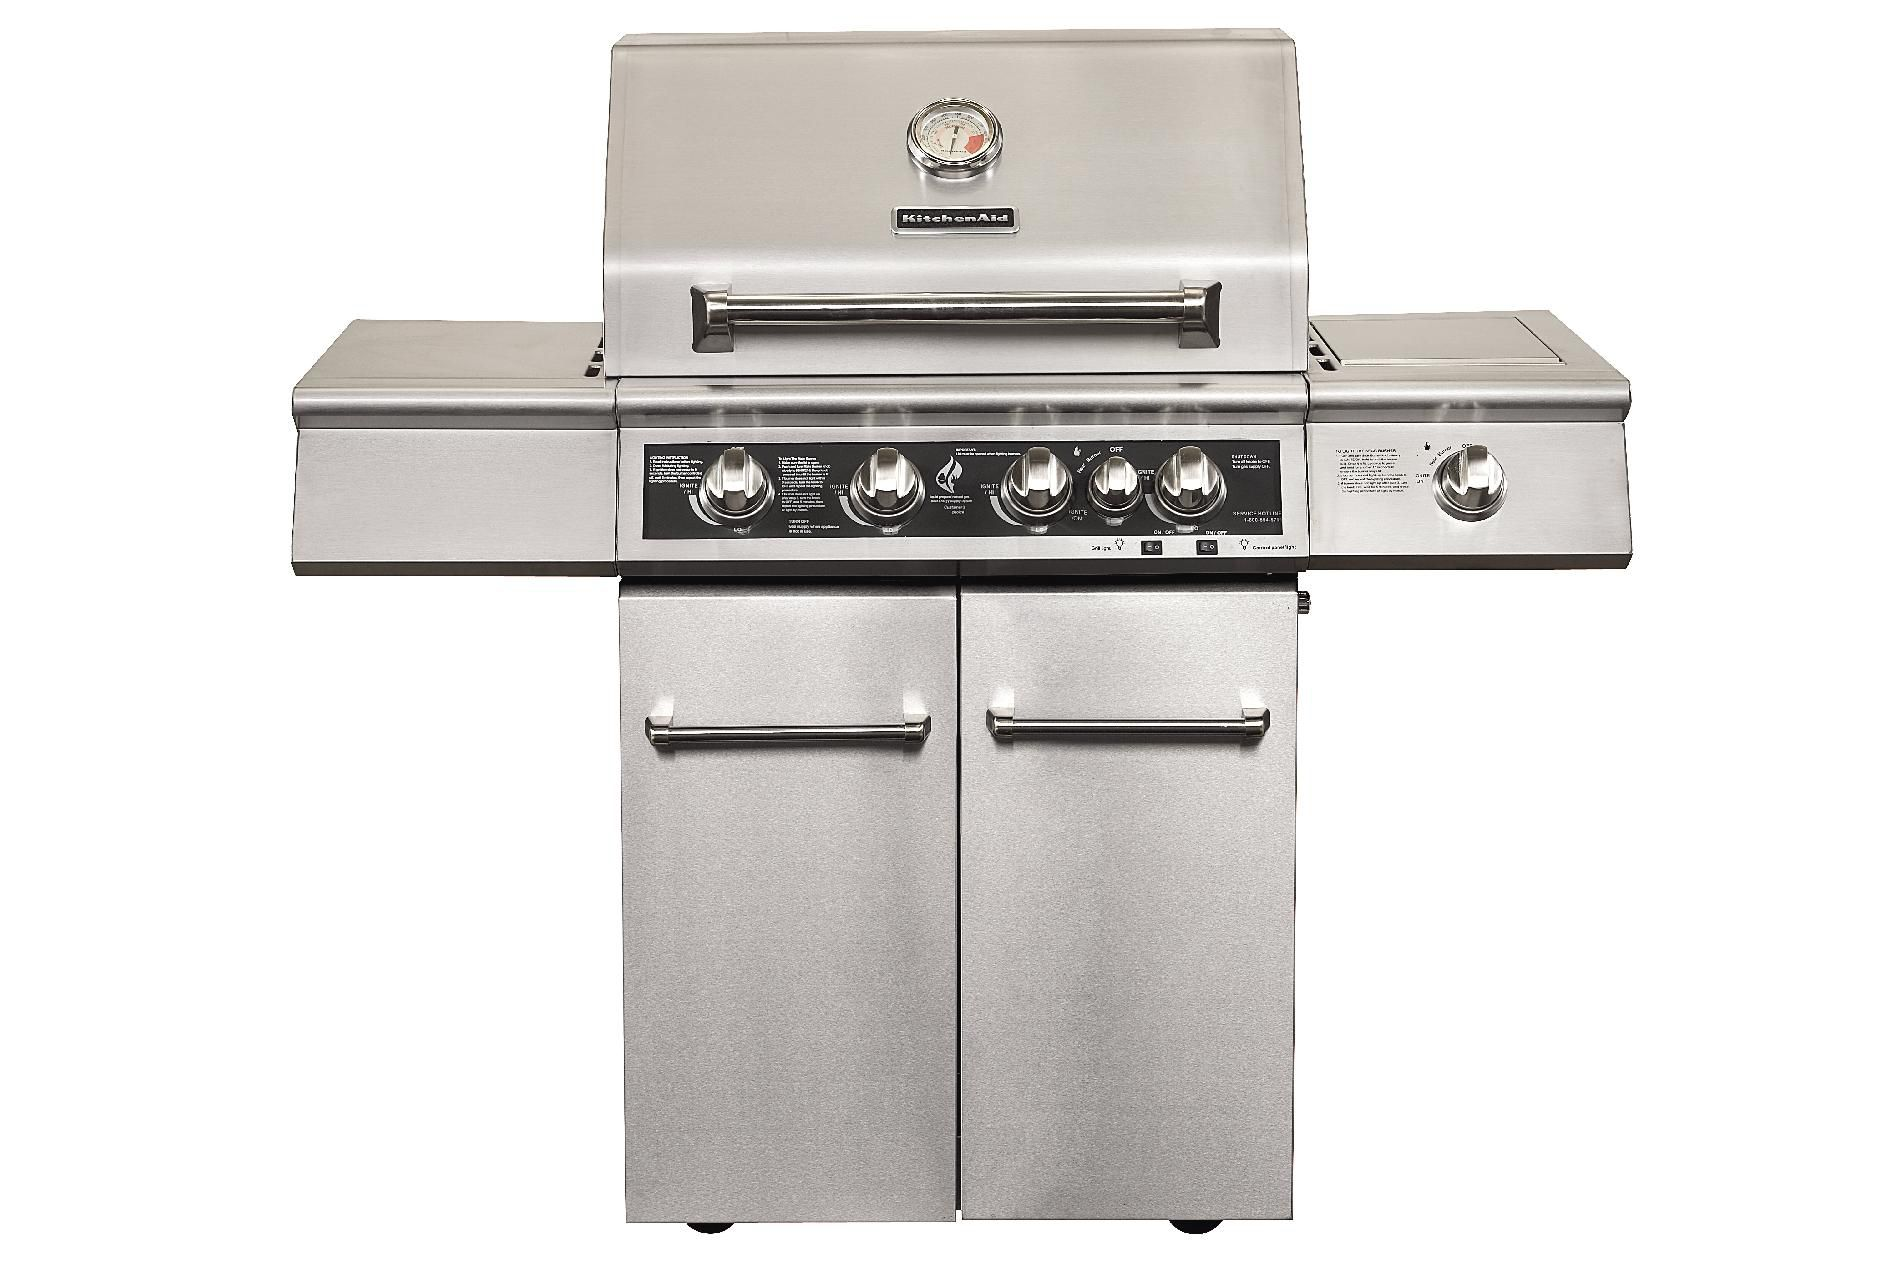 KitchenAid 4-Burner Dual Energy Outdoor Gas Grill w/ LED Backlit Control Panel